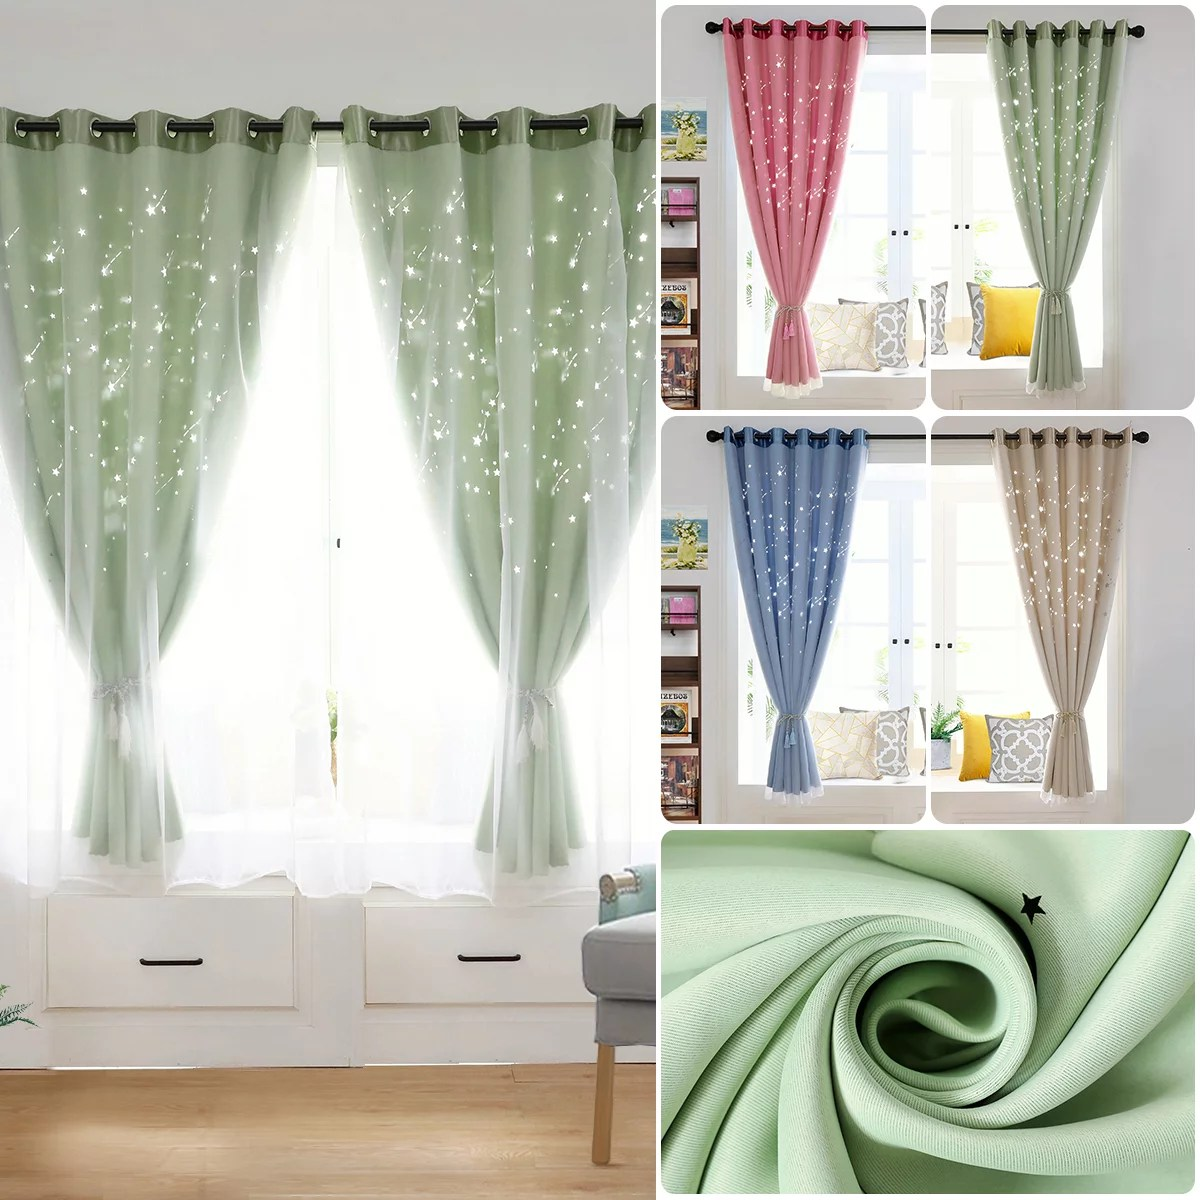 38 59 78 x 78 star eyelet thermal blackout curtains for kids room ring top curtain mesh walmart com